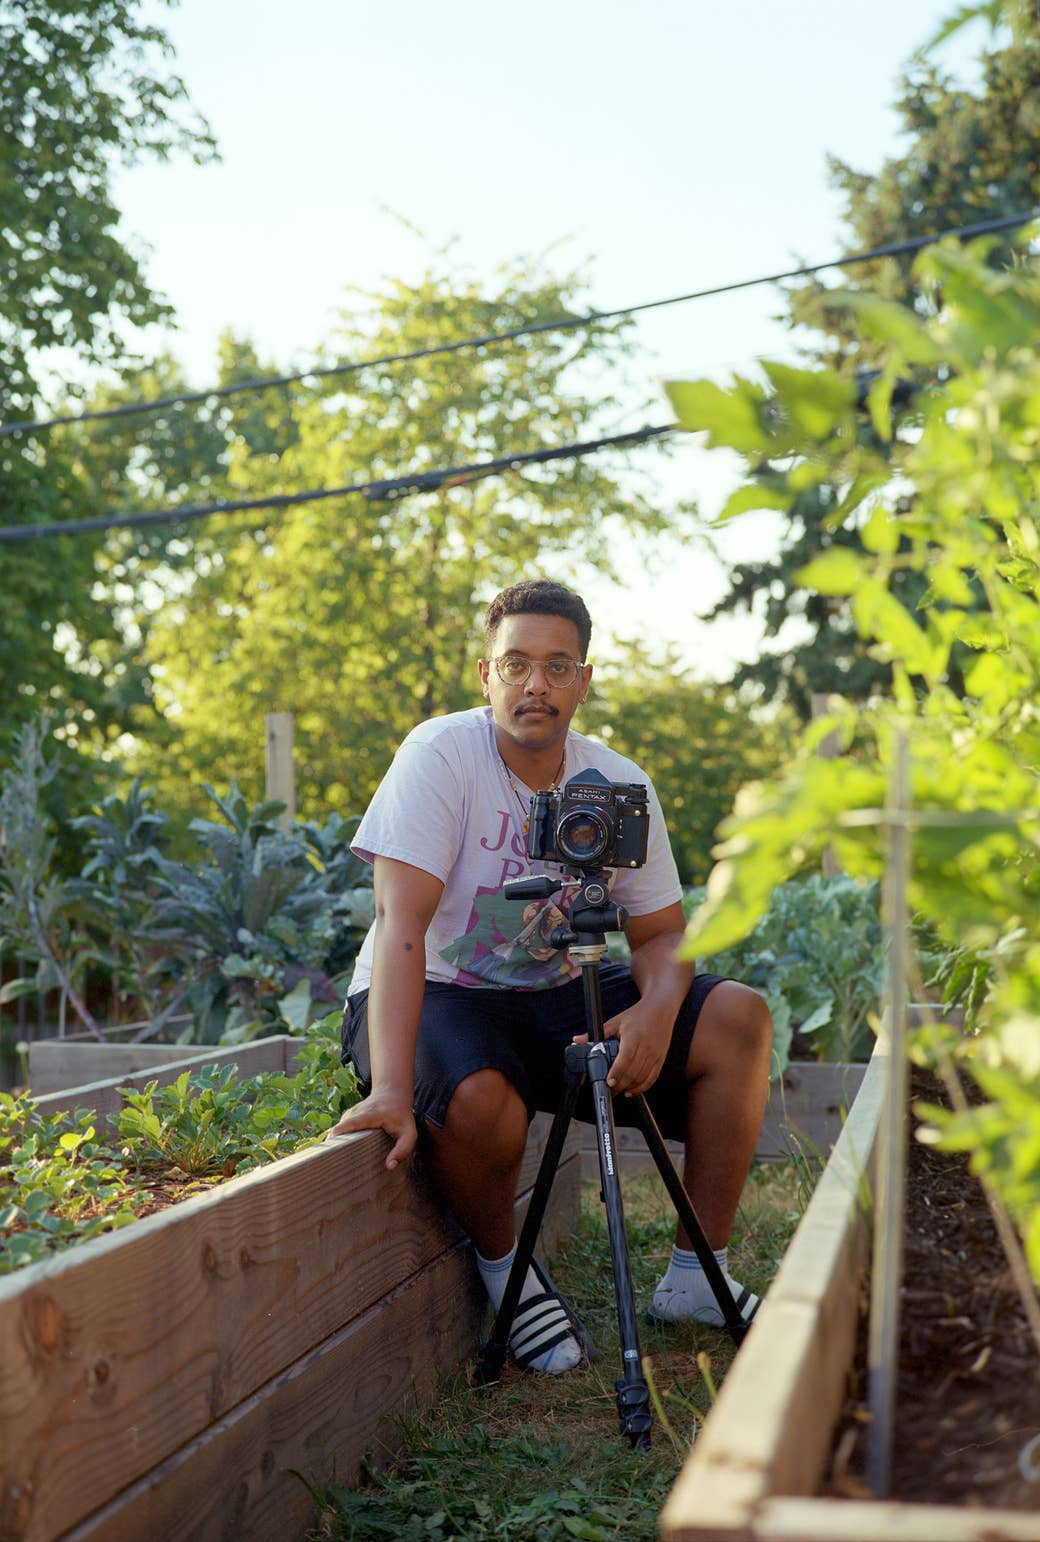 The photographer sits in his garden with a medium format camera, facing the camera